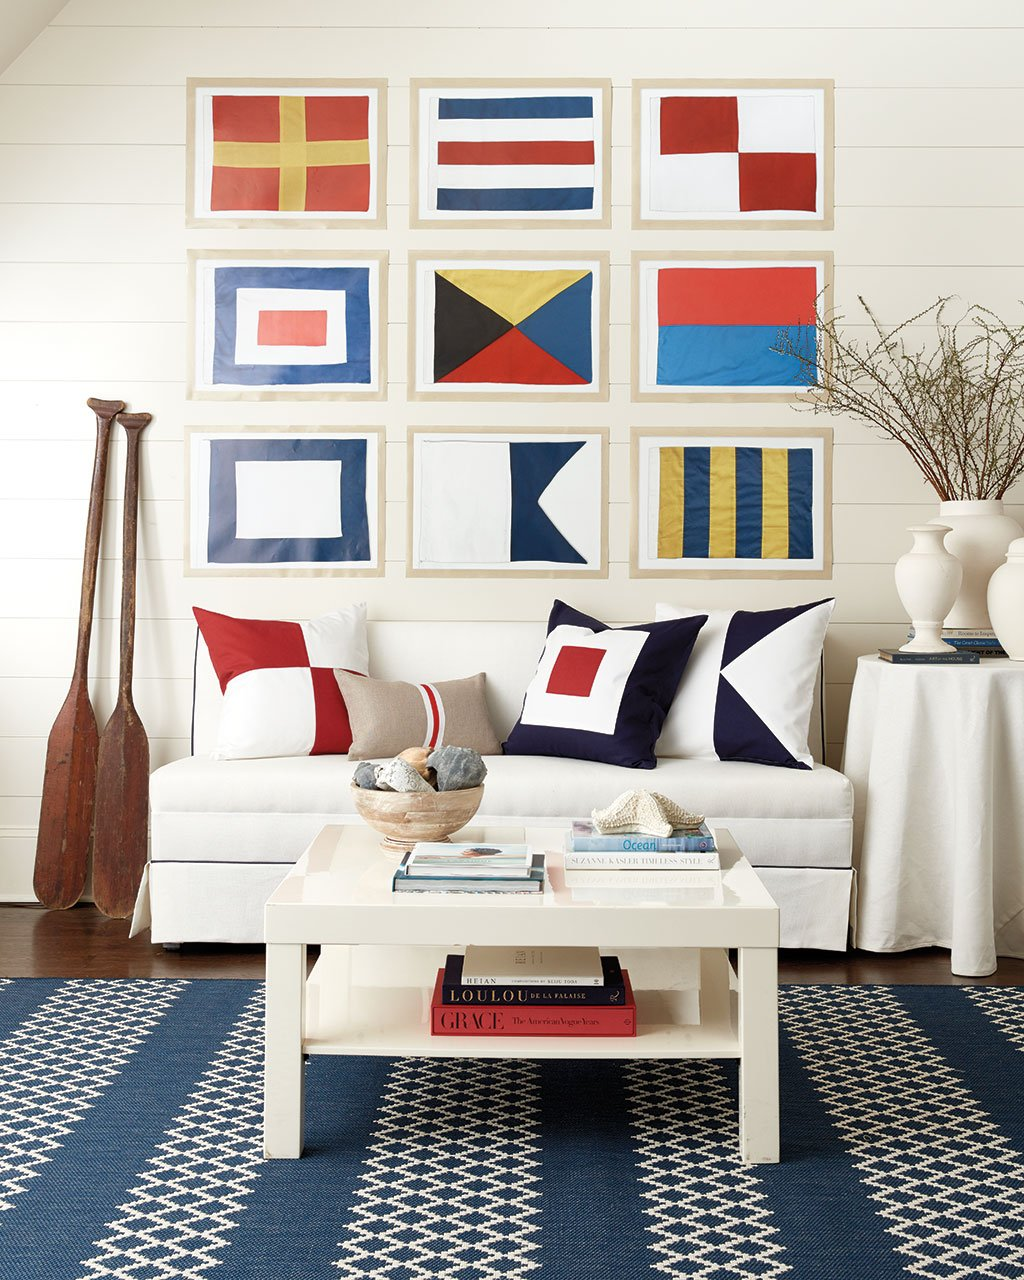 summer 2017 inspiration with suzanne kasler how to decorate ballard designs suzanne kasler french bisque lamp slips and more shop suzanne kasler seafarer nautical flags suzanne kasler seafarer throw pillow